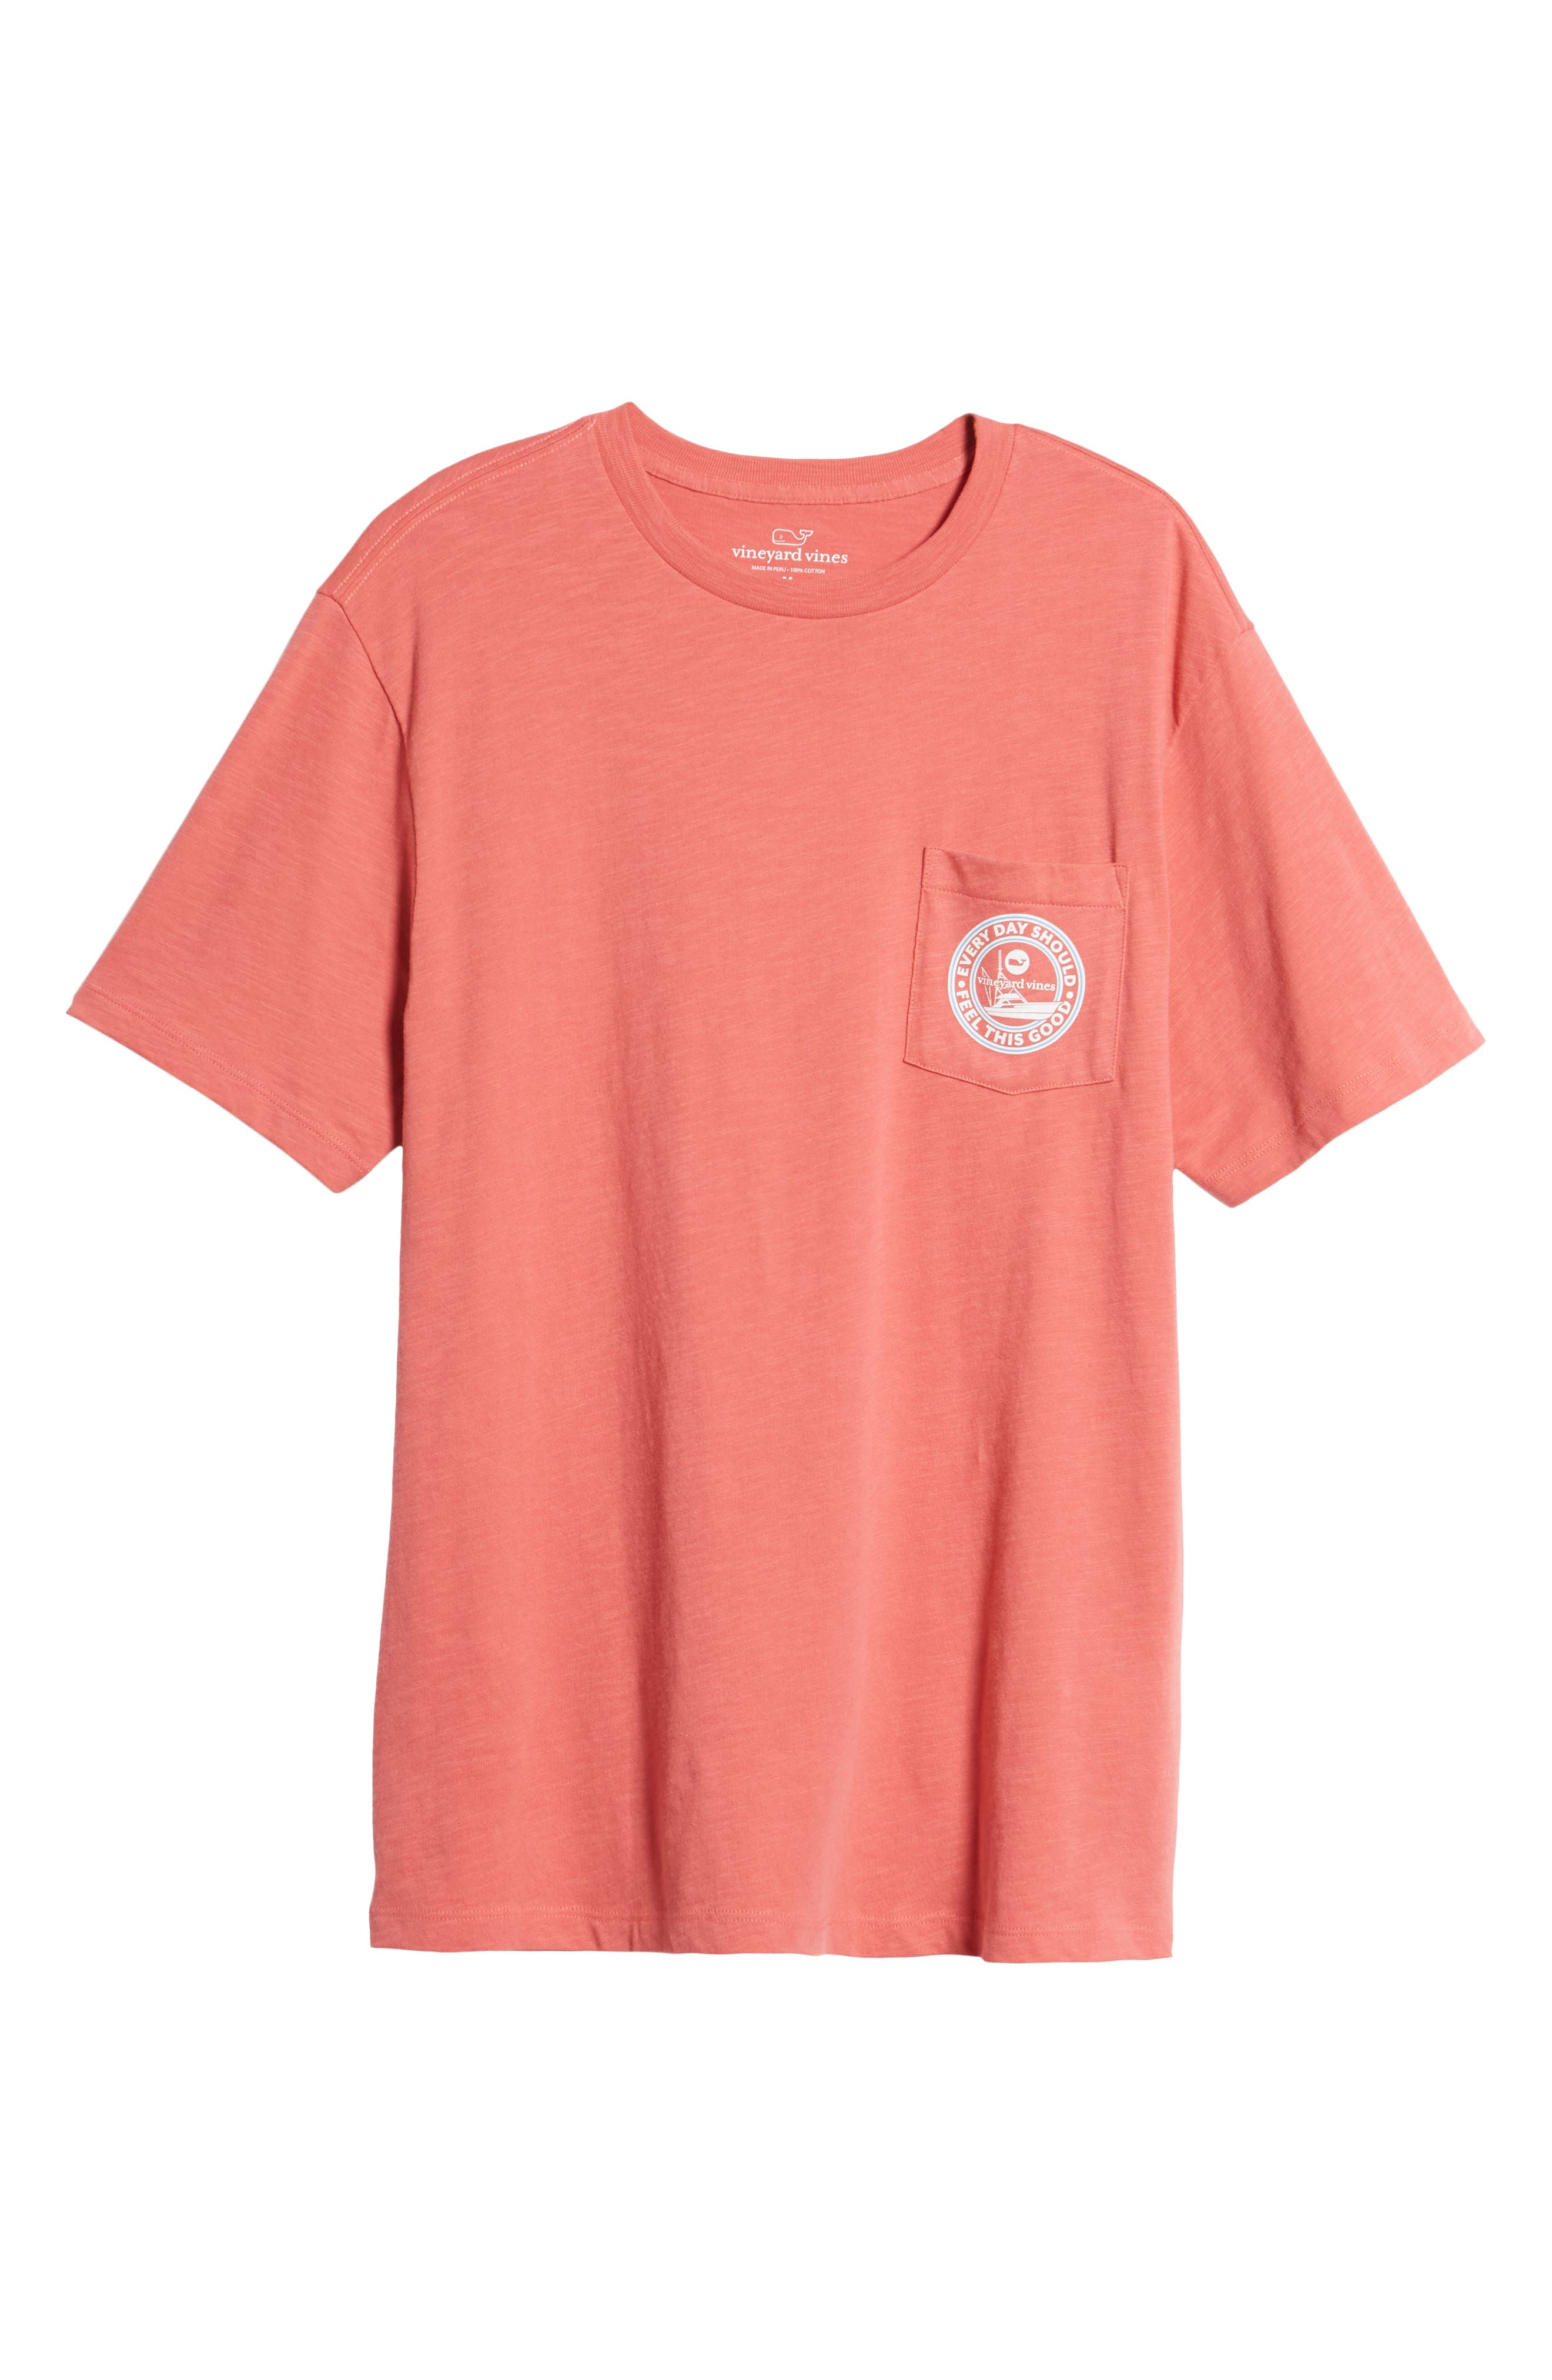 VINEYARD VINES,                             Every Day Should Feel This Good Pocket T-Shirt,                             Alternate thumbnail 6, color,                             628